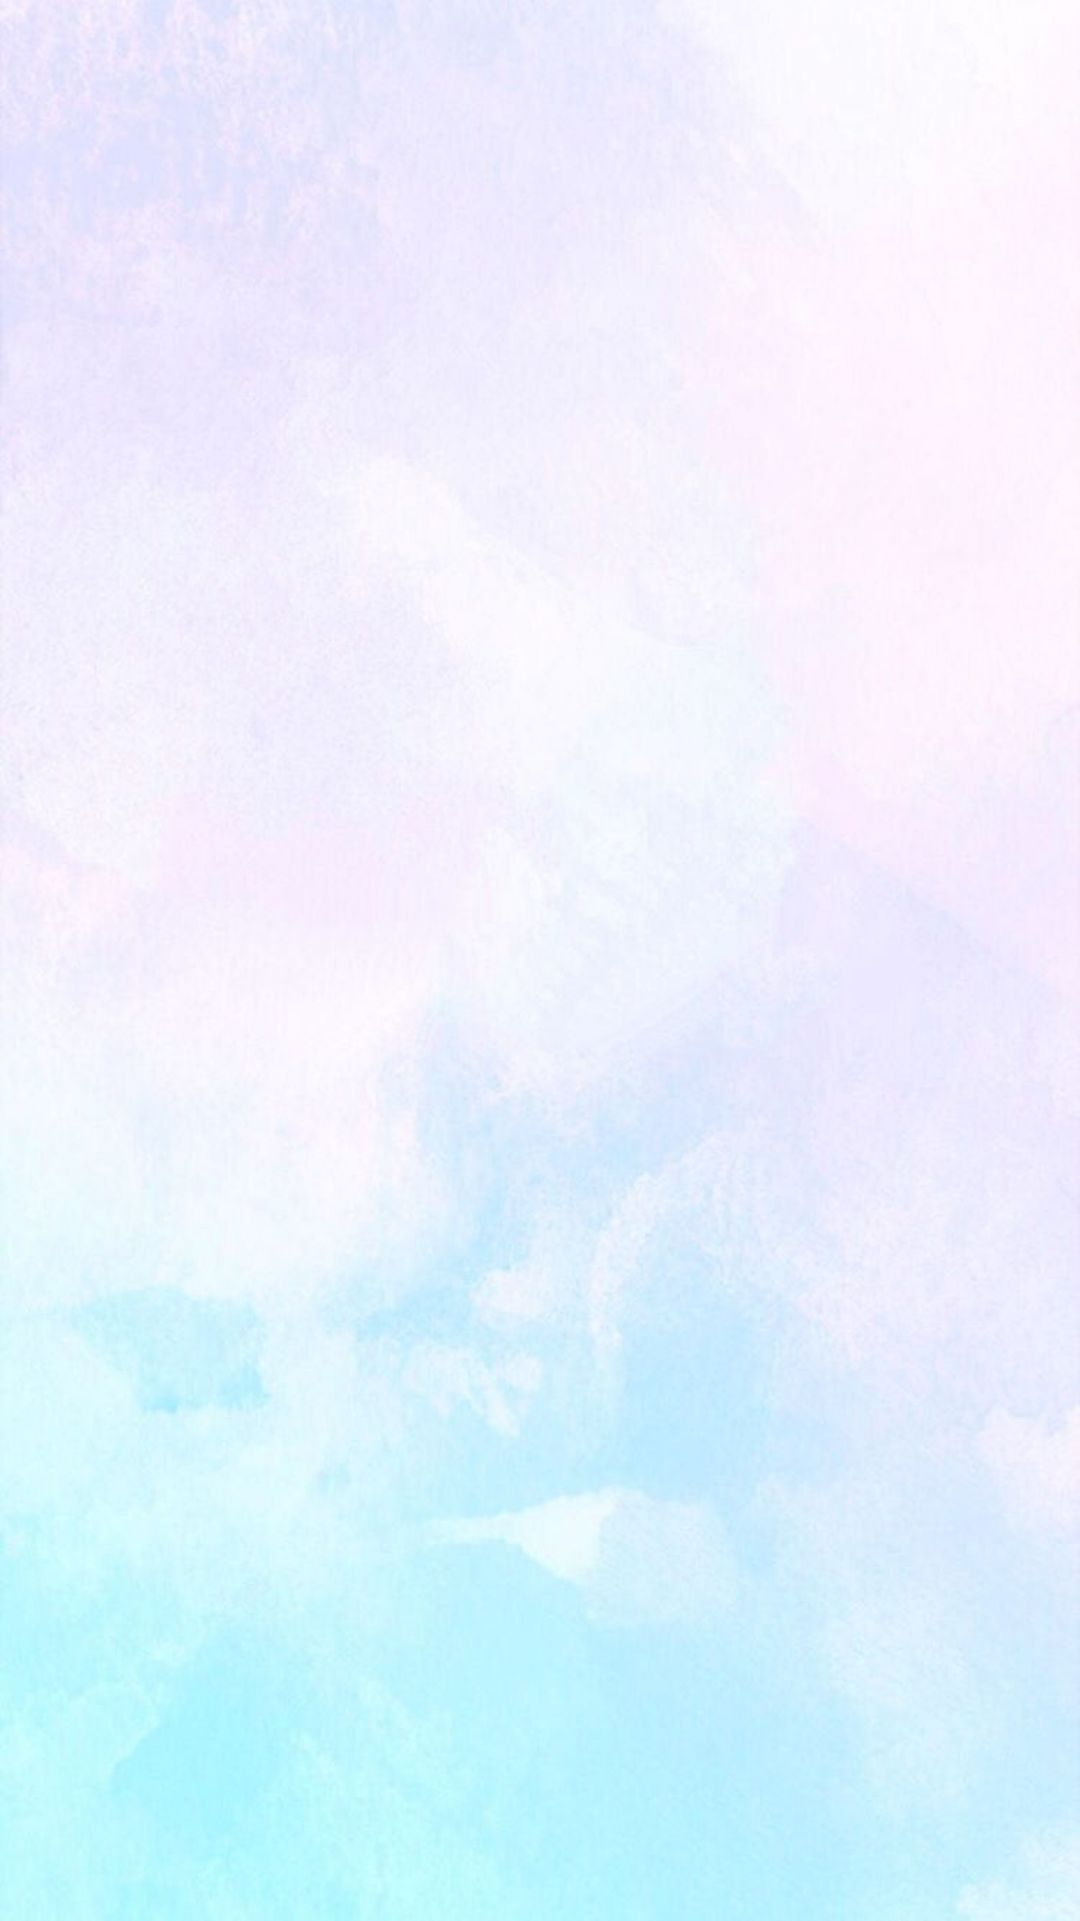 clouds aesthetic tumblrandroid iphone desktop hd backgrounds wallpapers 1080p 4k wtvrw